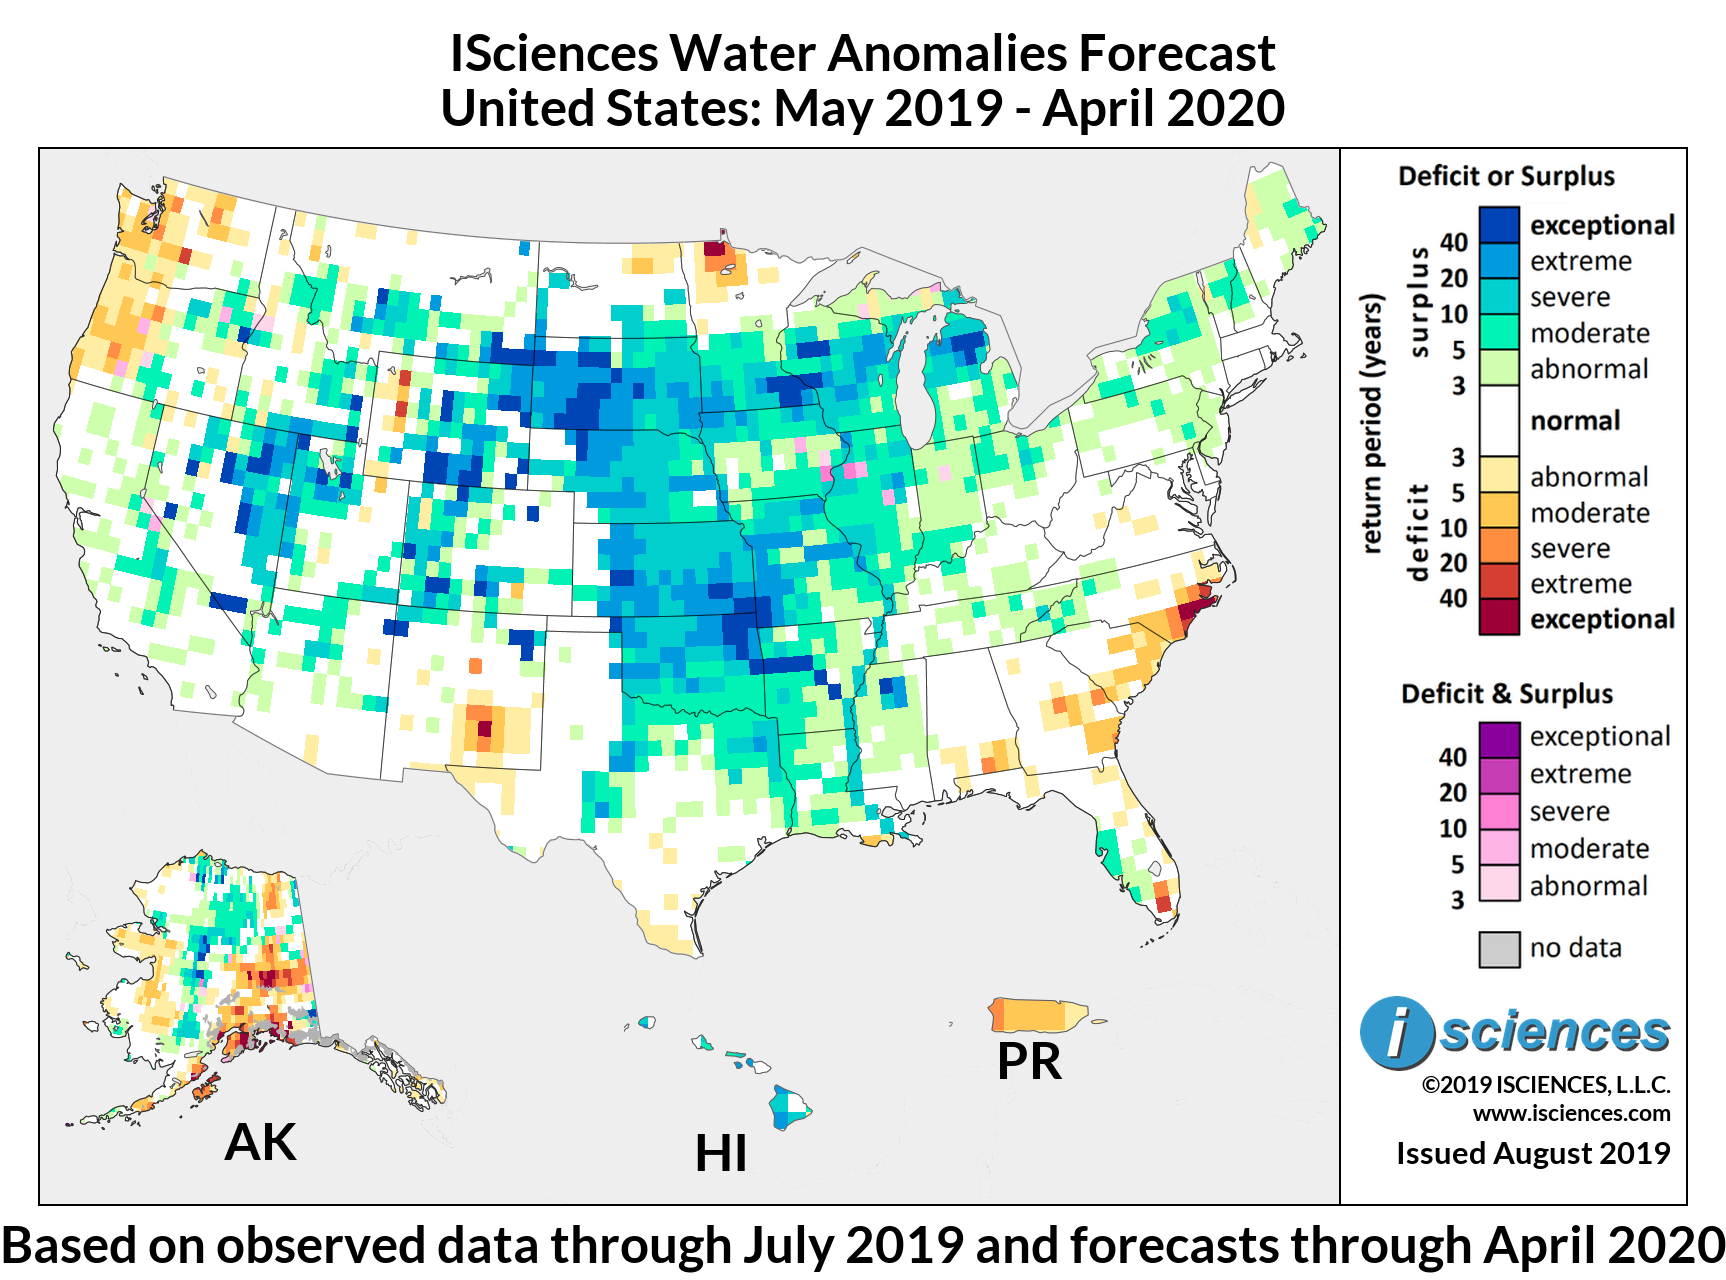 ISciences_United_States_Composite_Adjusted_201905-202004_12mo_panel.png